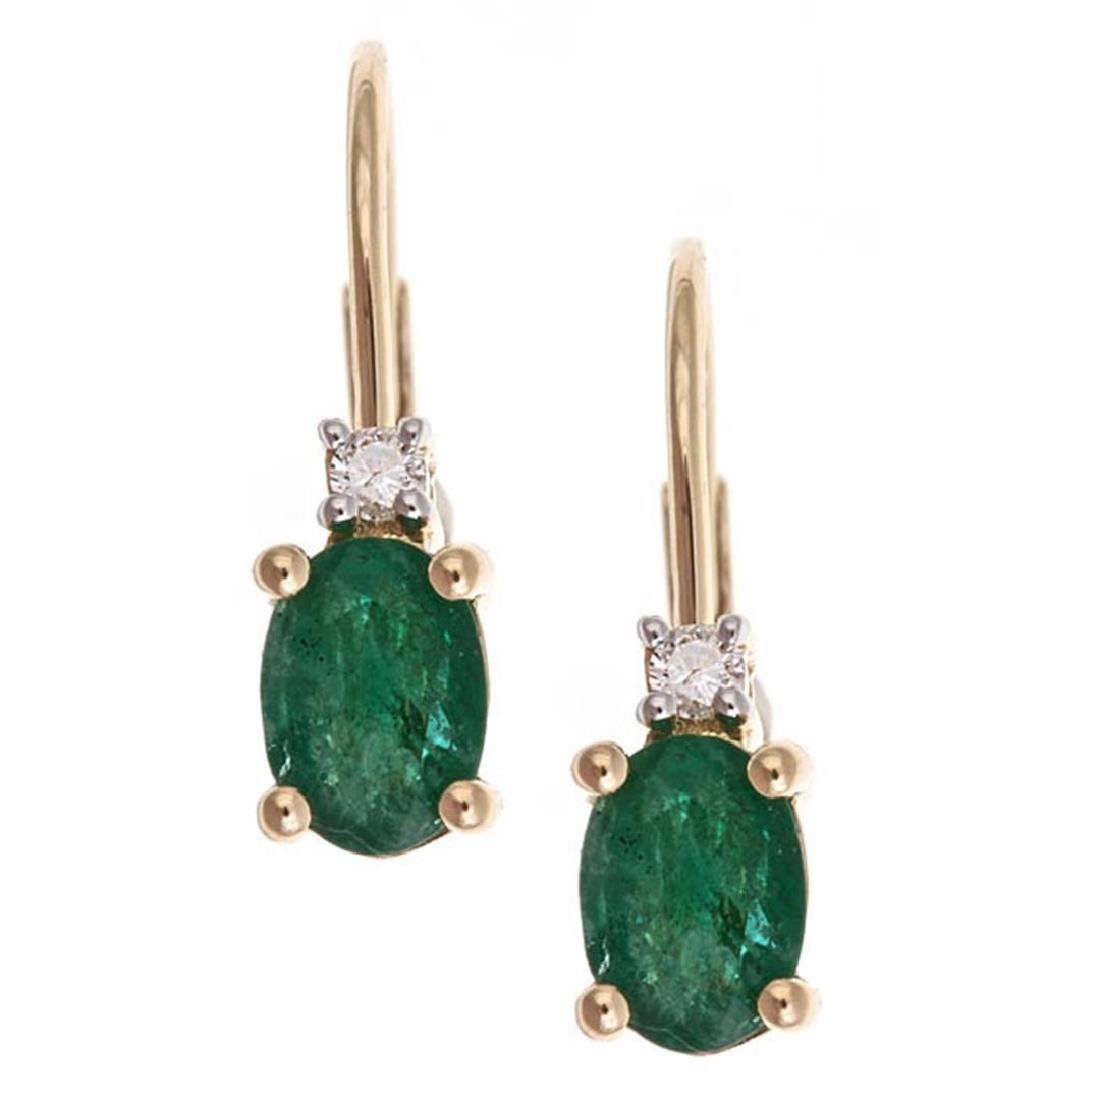 0.84 ctw Emerald and Diamond Earrings - 10KT Yellow